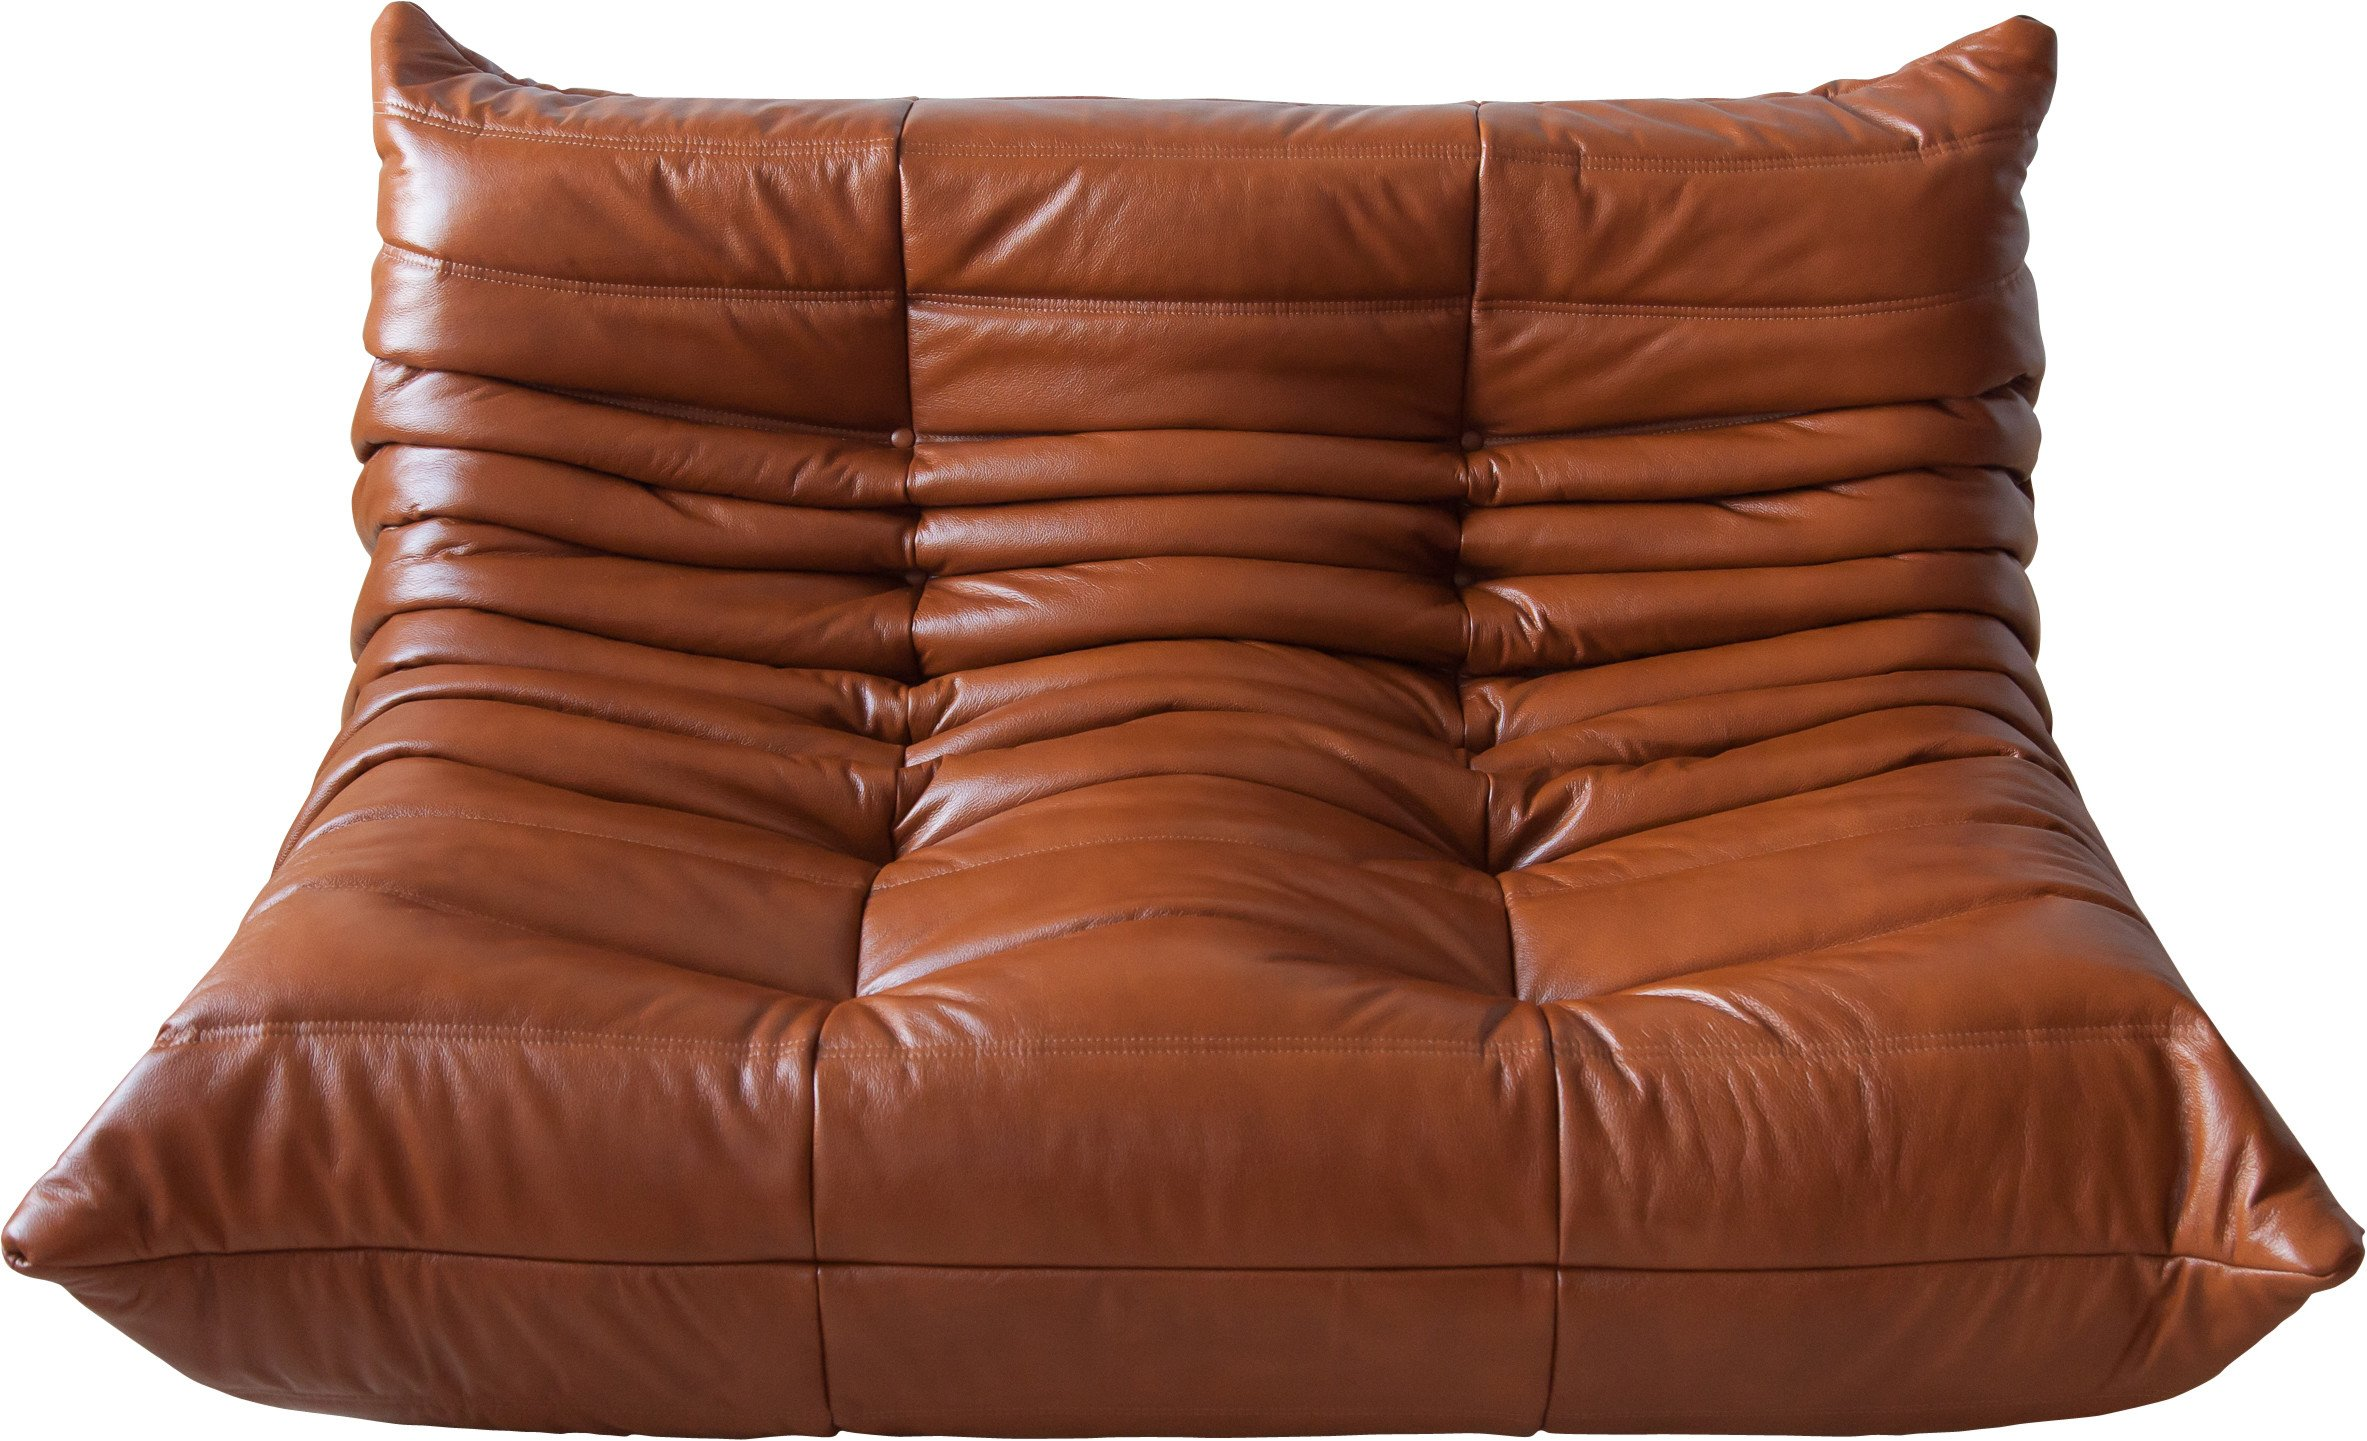 Togo Two-Seat Sofa in Whiskey Brown Leather by M. Ducaroy, Ligne Roset, France, 1970s